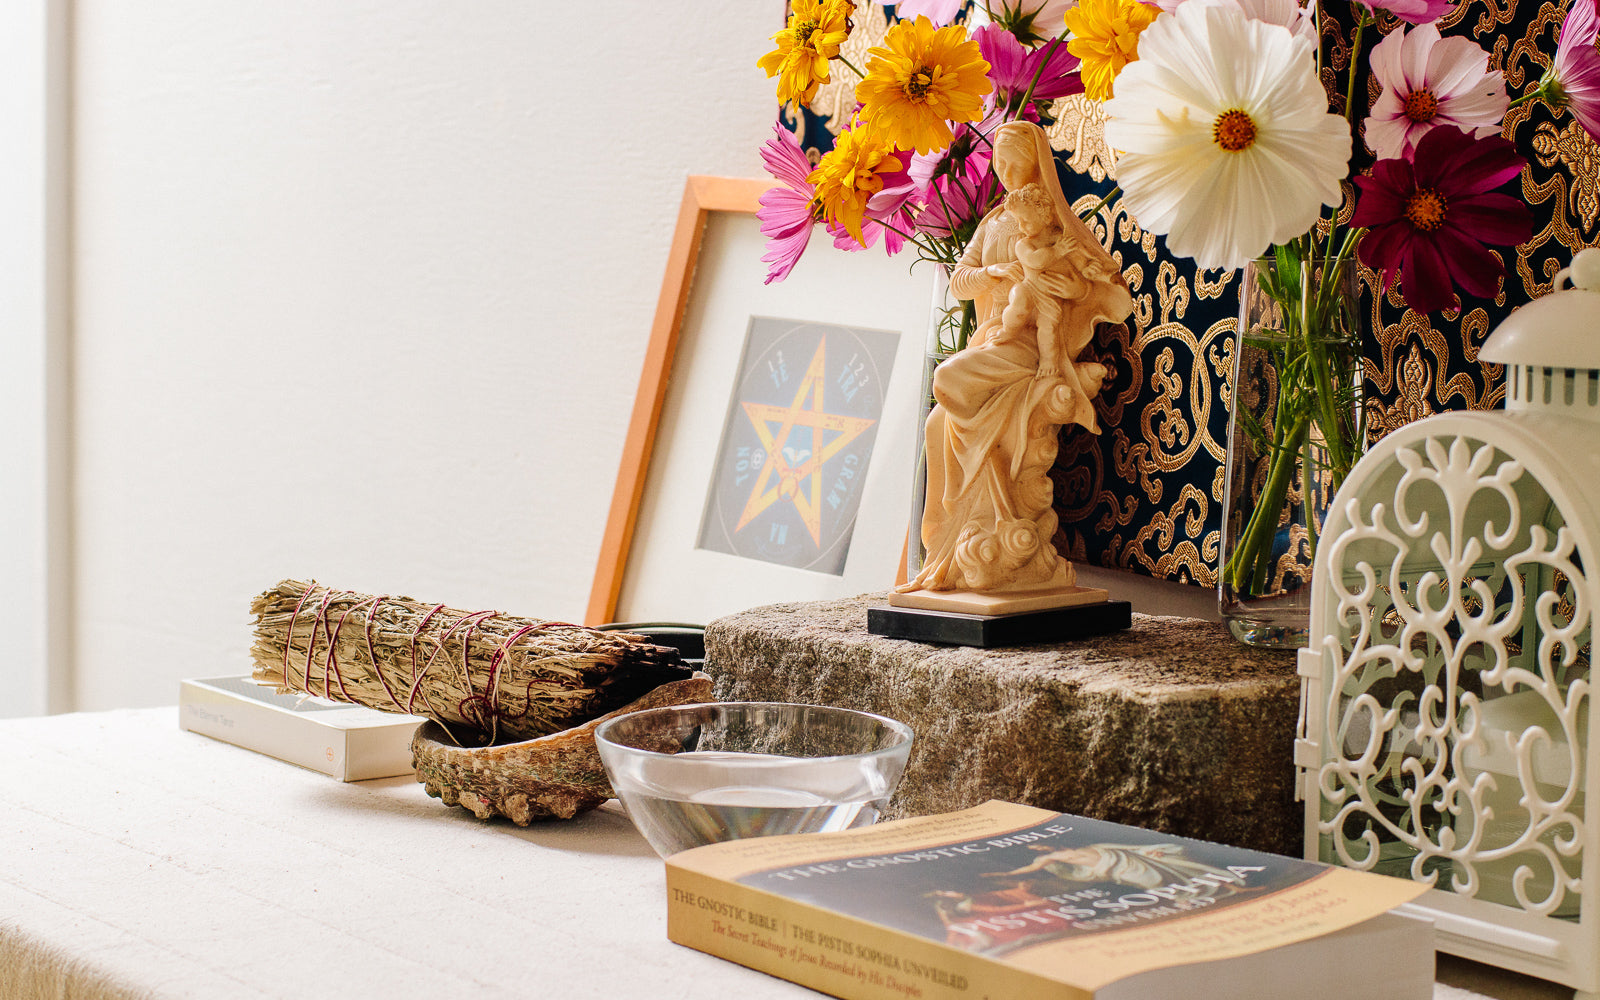 Energize Your Home with an Altar